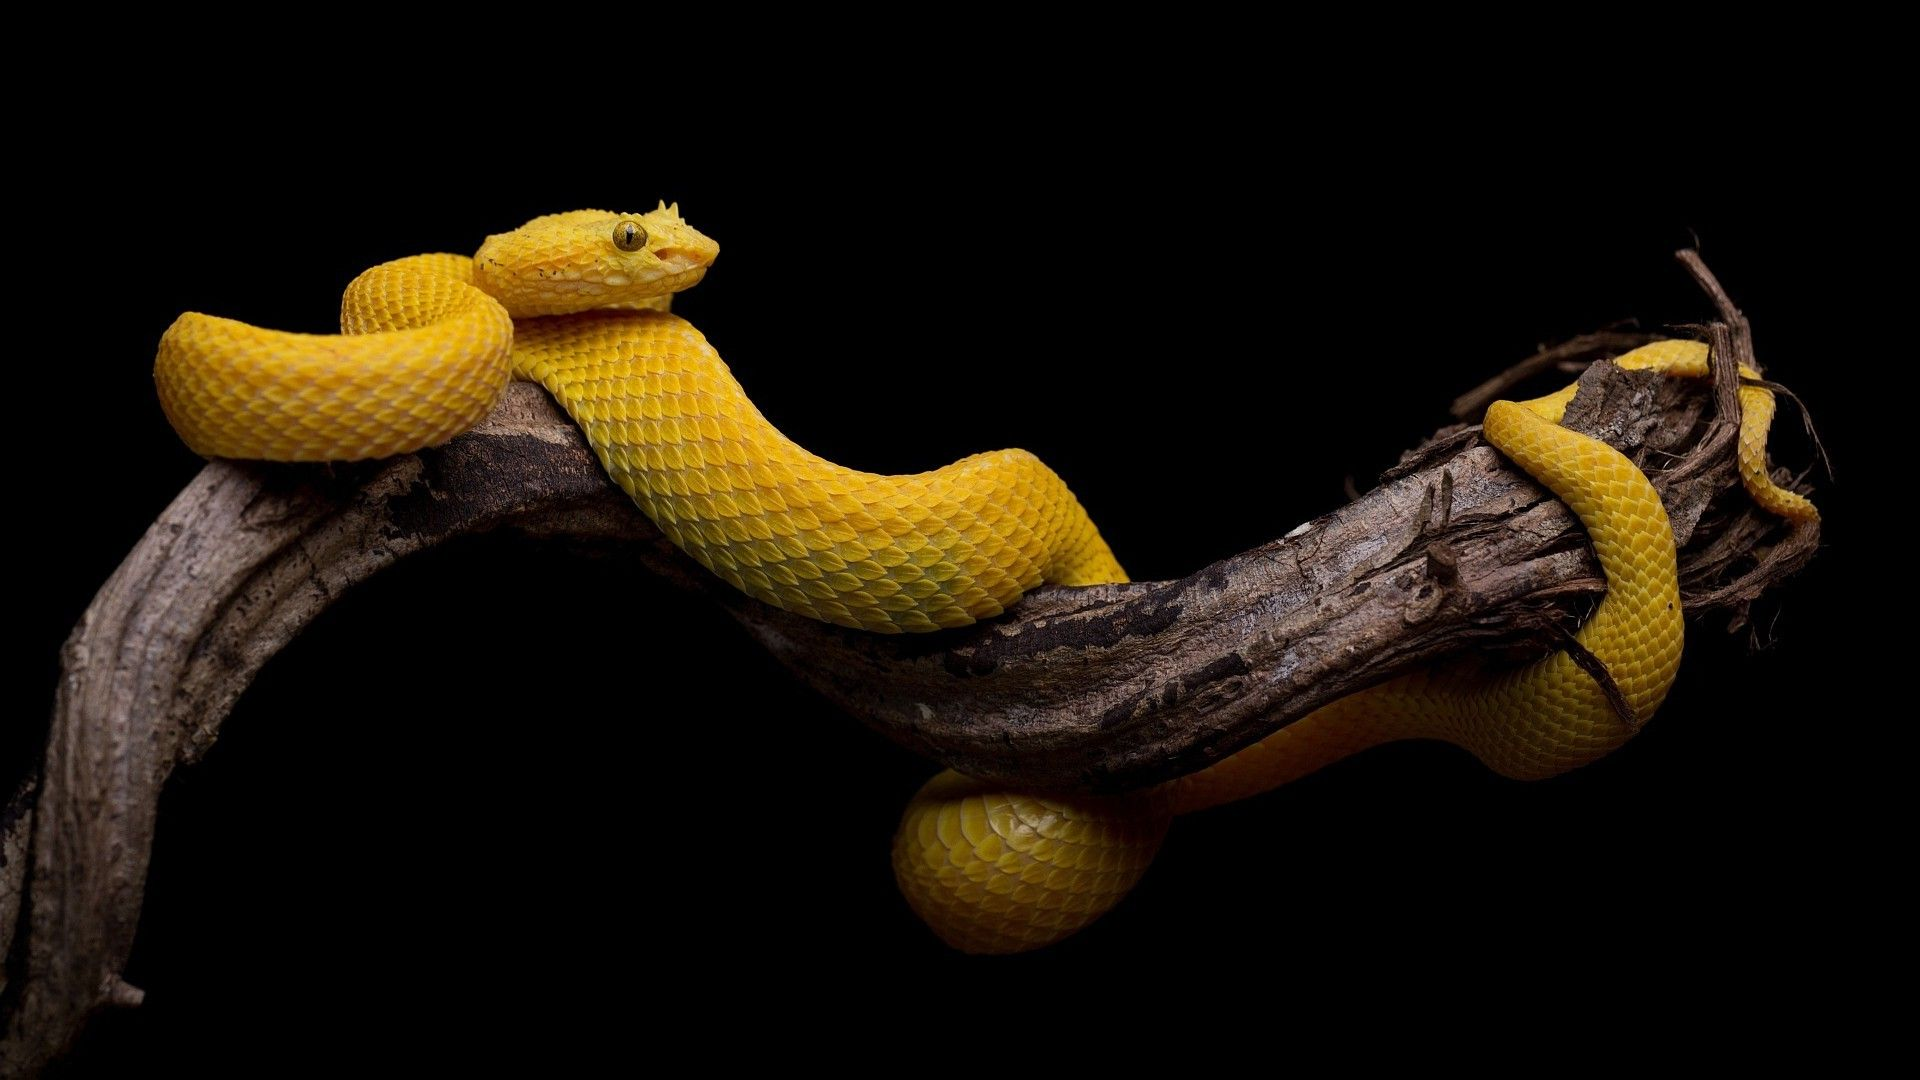 Download Hd Wallpapers Of  Black Background Simple Snake Animals Reptile